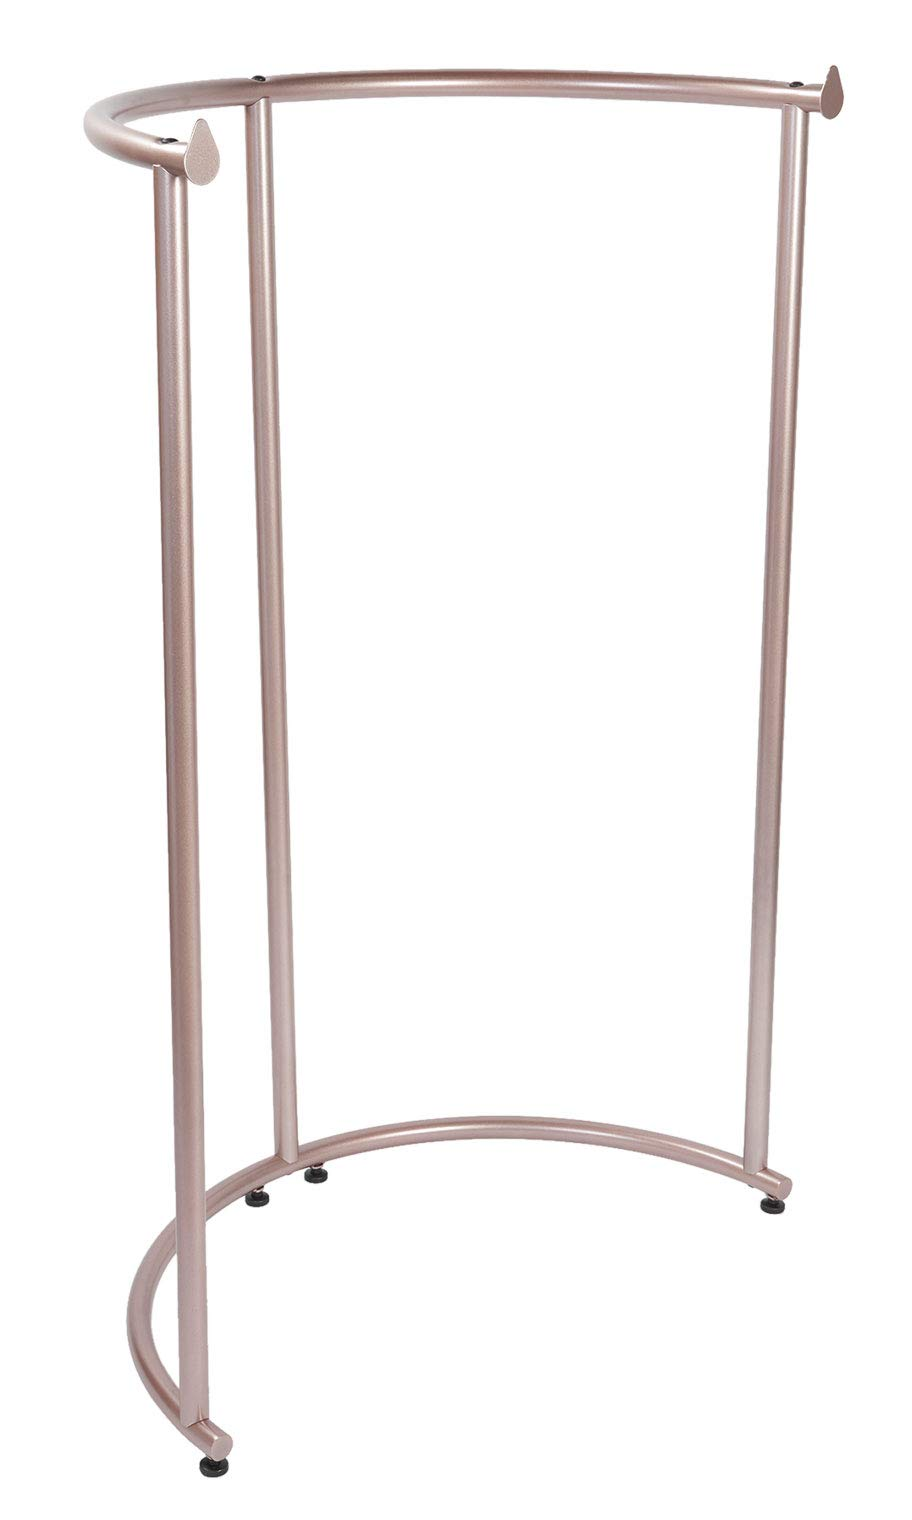 SSWBasics Half Round Rack - Rose Gold Clothing Rack (37 1/2'' W x 55'' H)